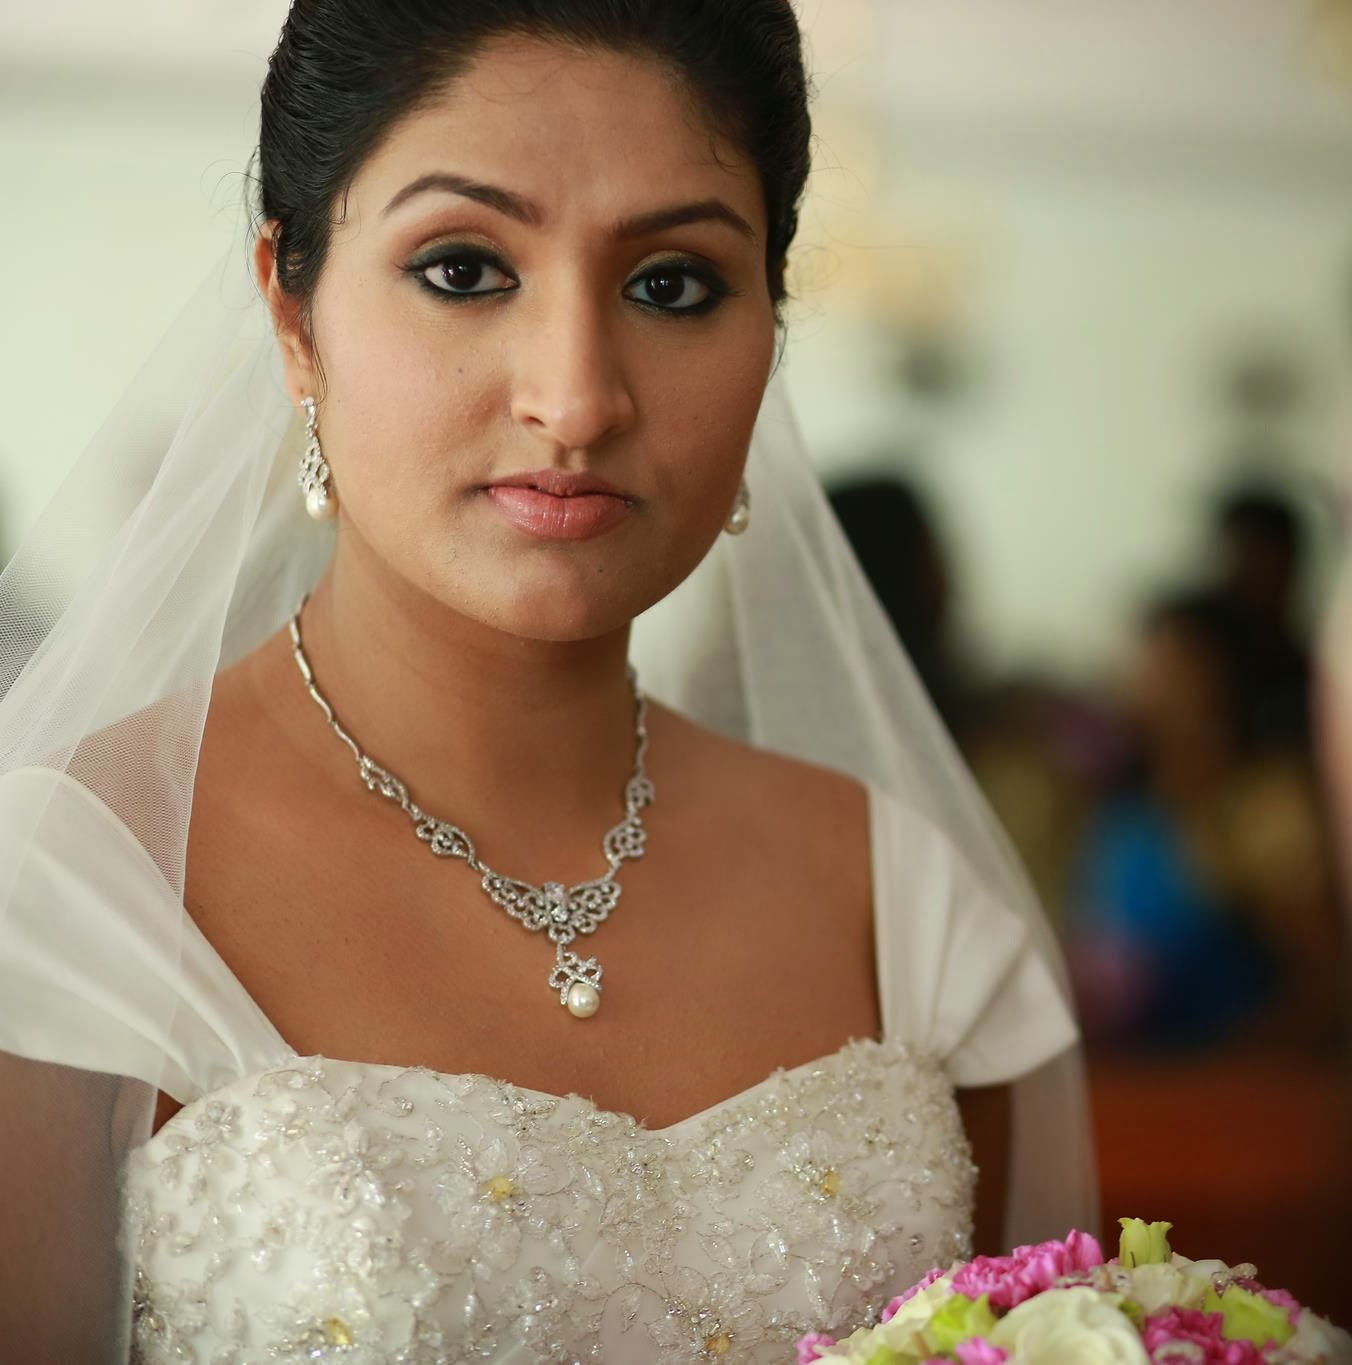 Latest Pics Of Kerala Brides: Exclusive Collection Of Cute Photos Of Kerala Television